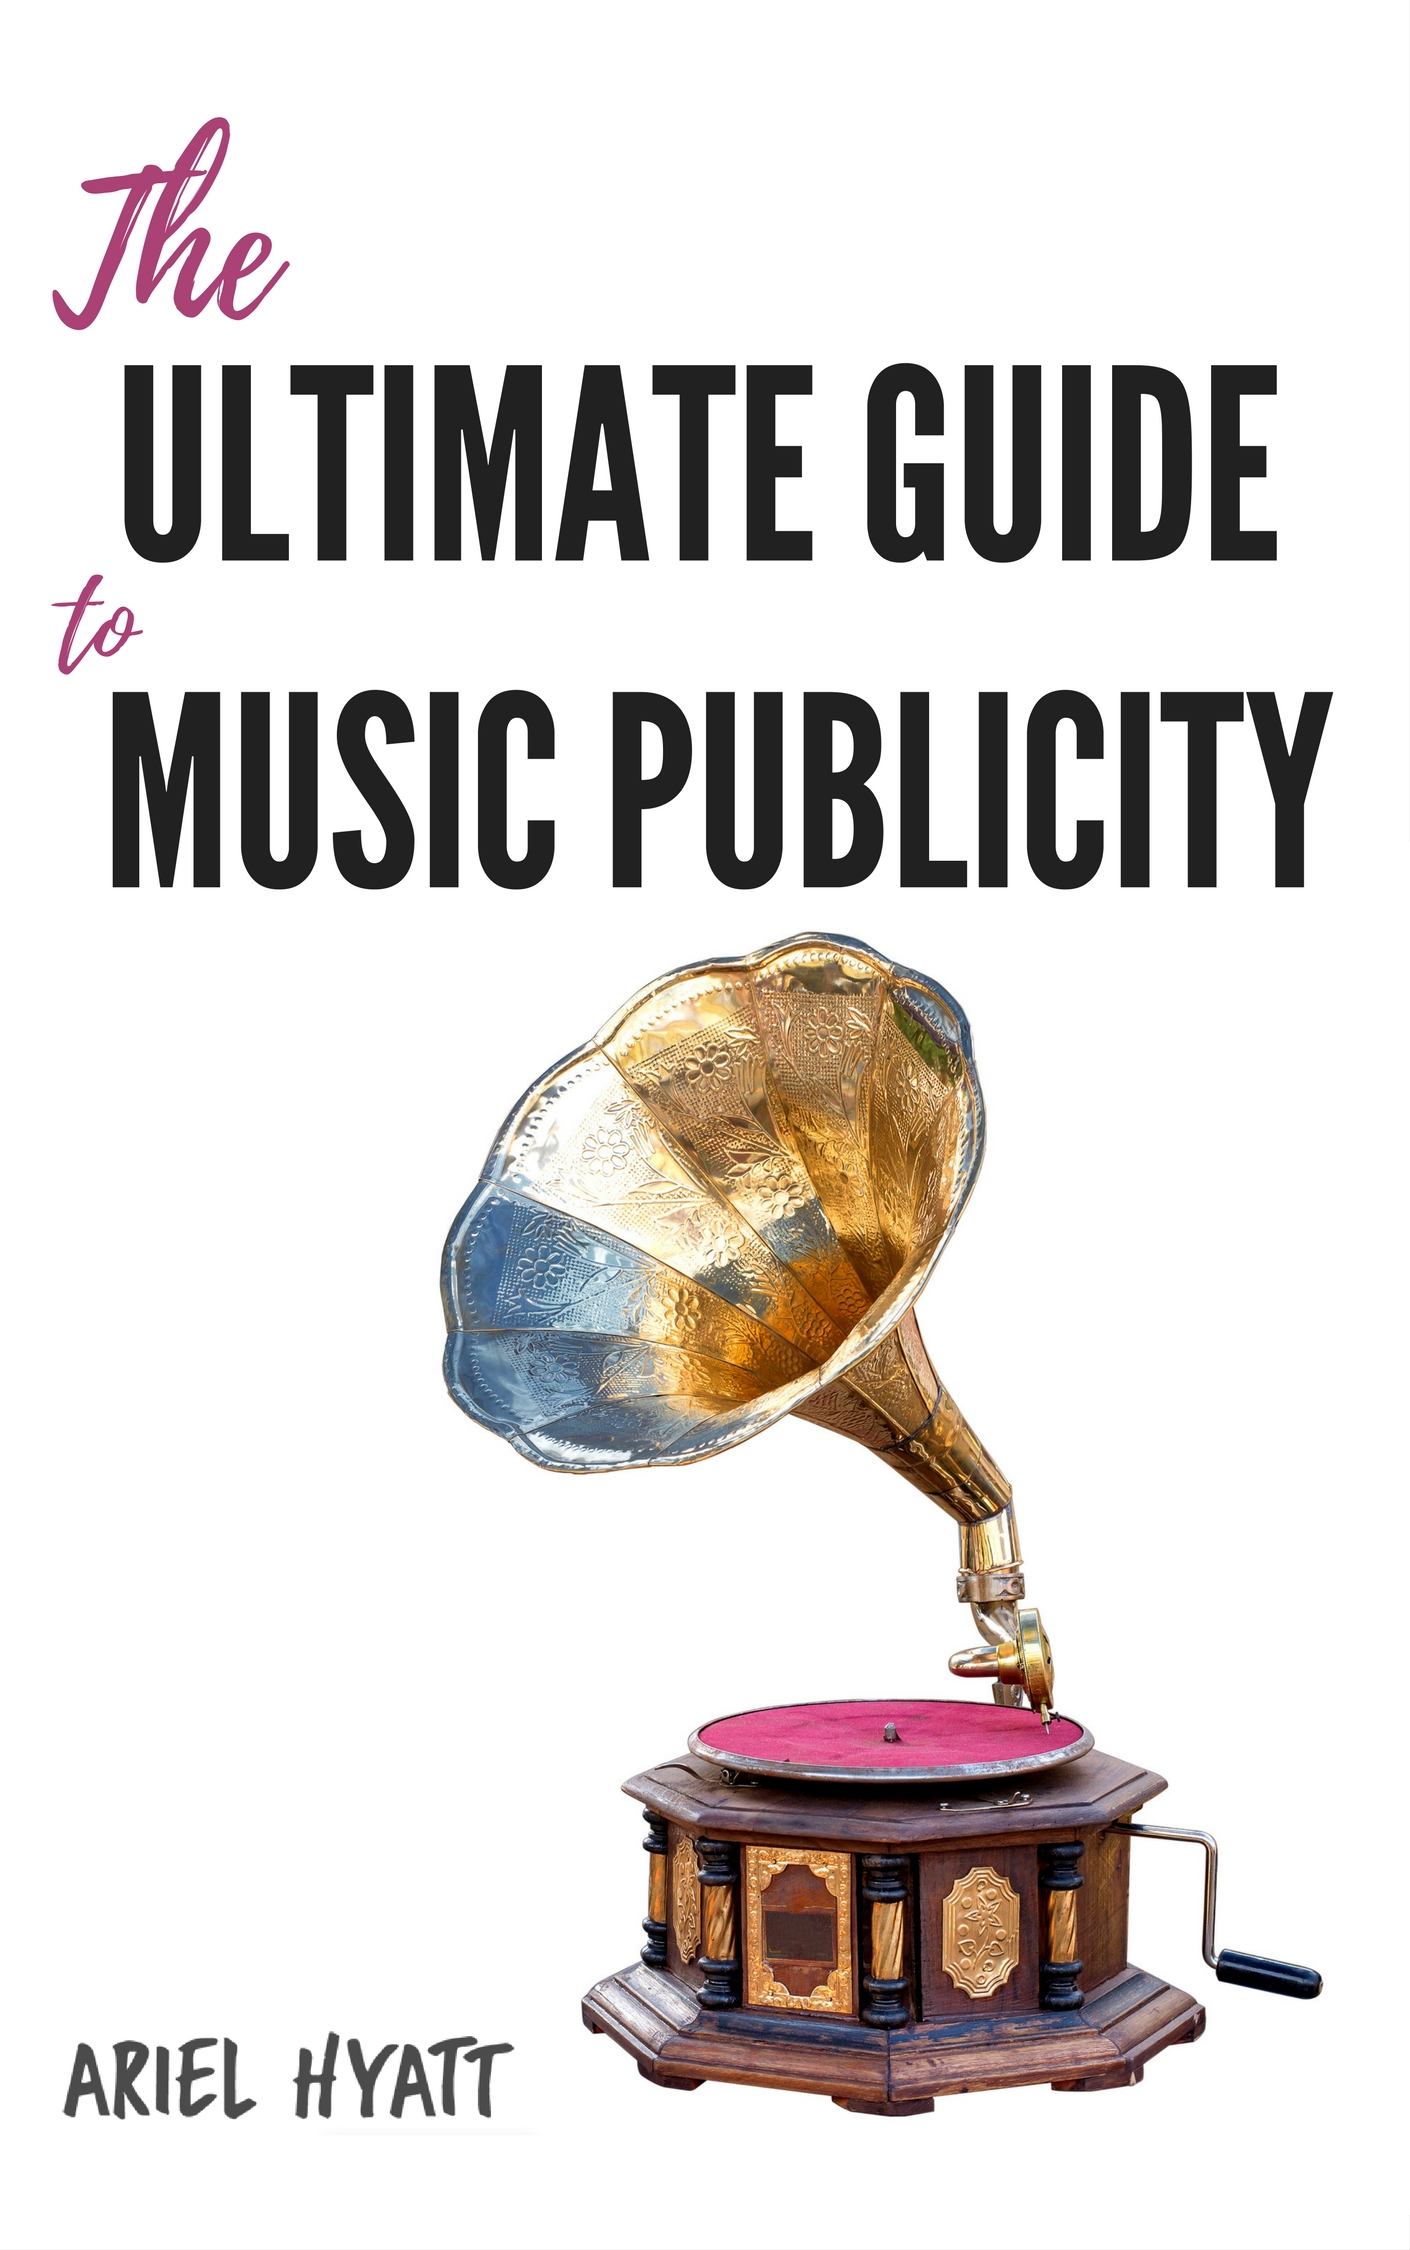 the ultimate music guide dowload